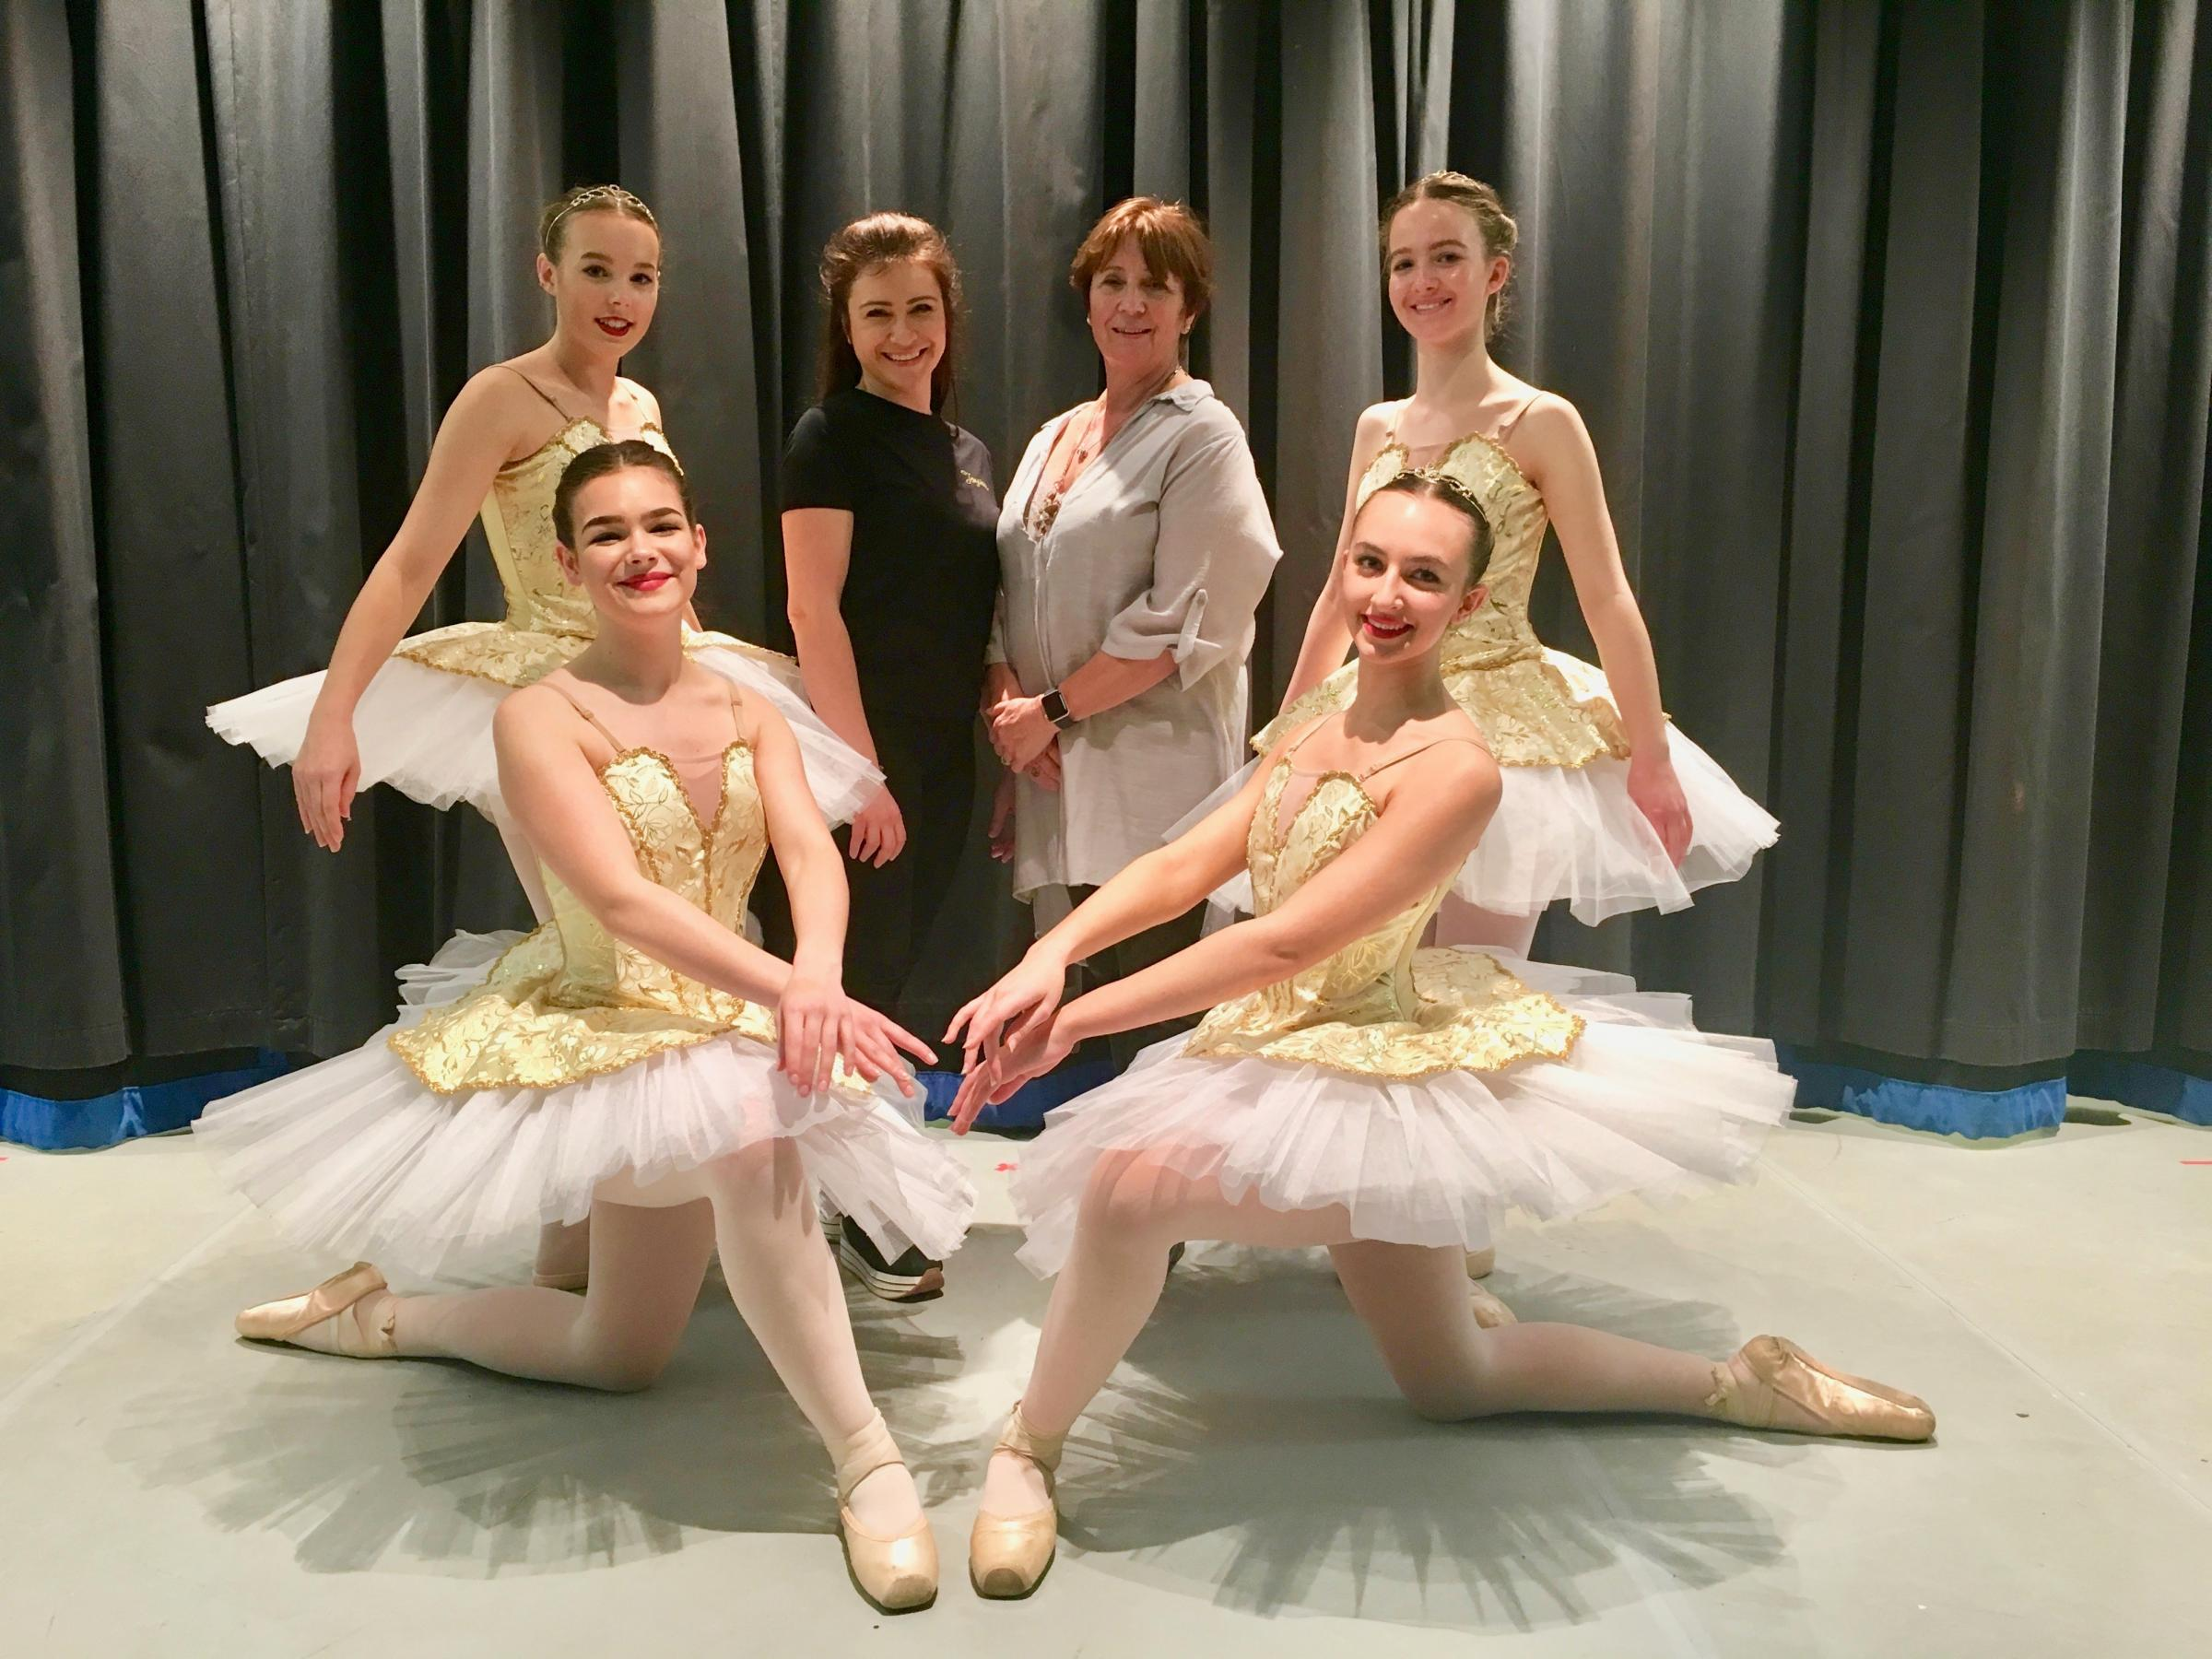 DANCE: Left kneeling: Nicola Durrell, left standing Beatrice Tweedie, Beccy Clark, Sheila Price, right standing Isobel Seward, right kneeling May Mackinnon-Little.